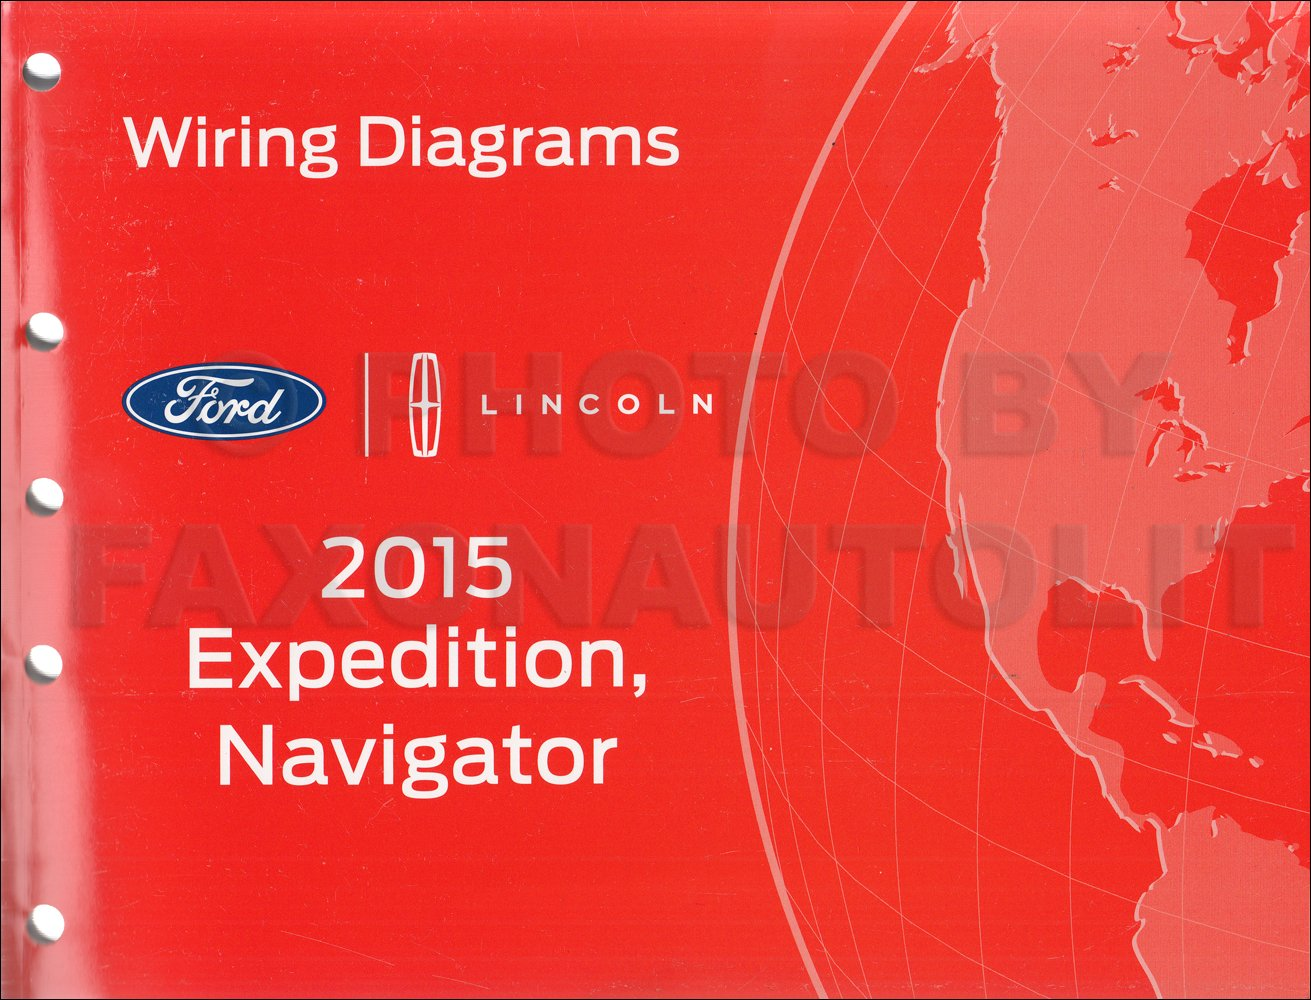 Wiring Diagram Ford Expedition from images-na.ssl-images-amazon.com